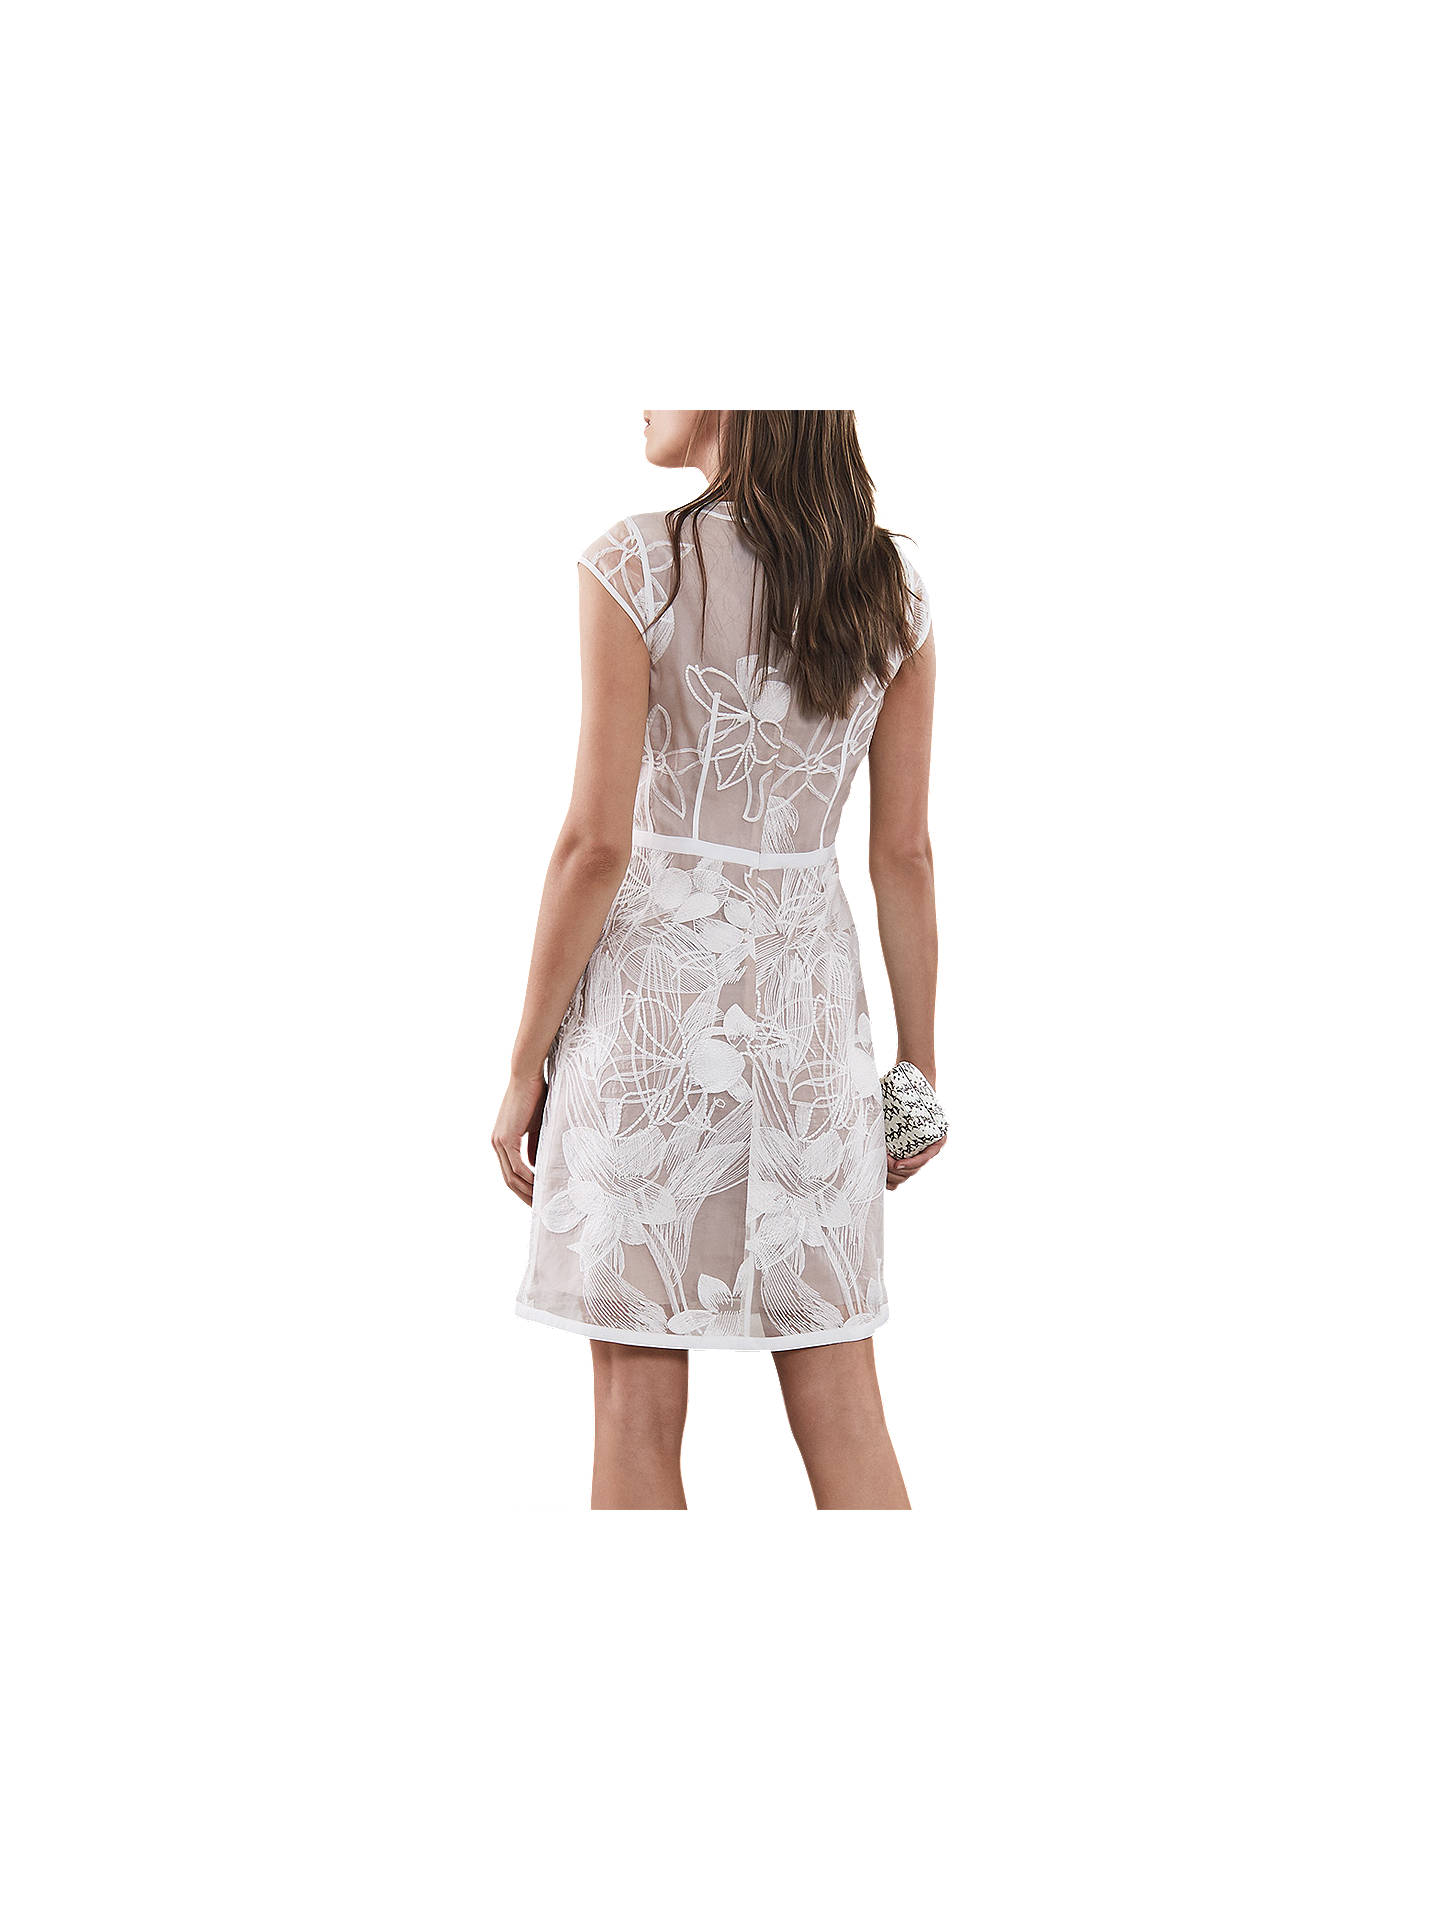 BuyReiss Ines Floral Dress, White/Nude, 6 Online at johnlewis.com